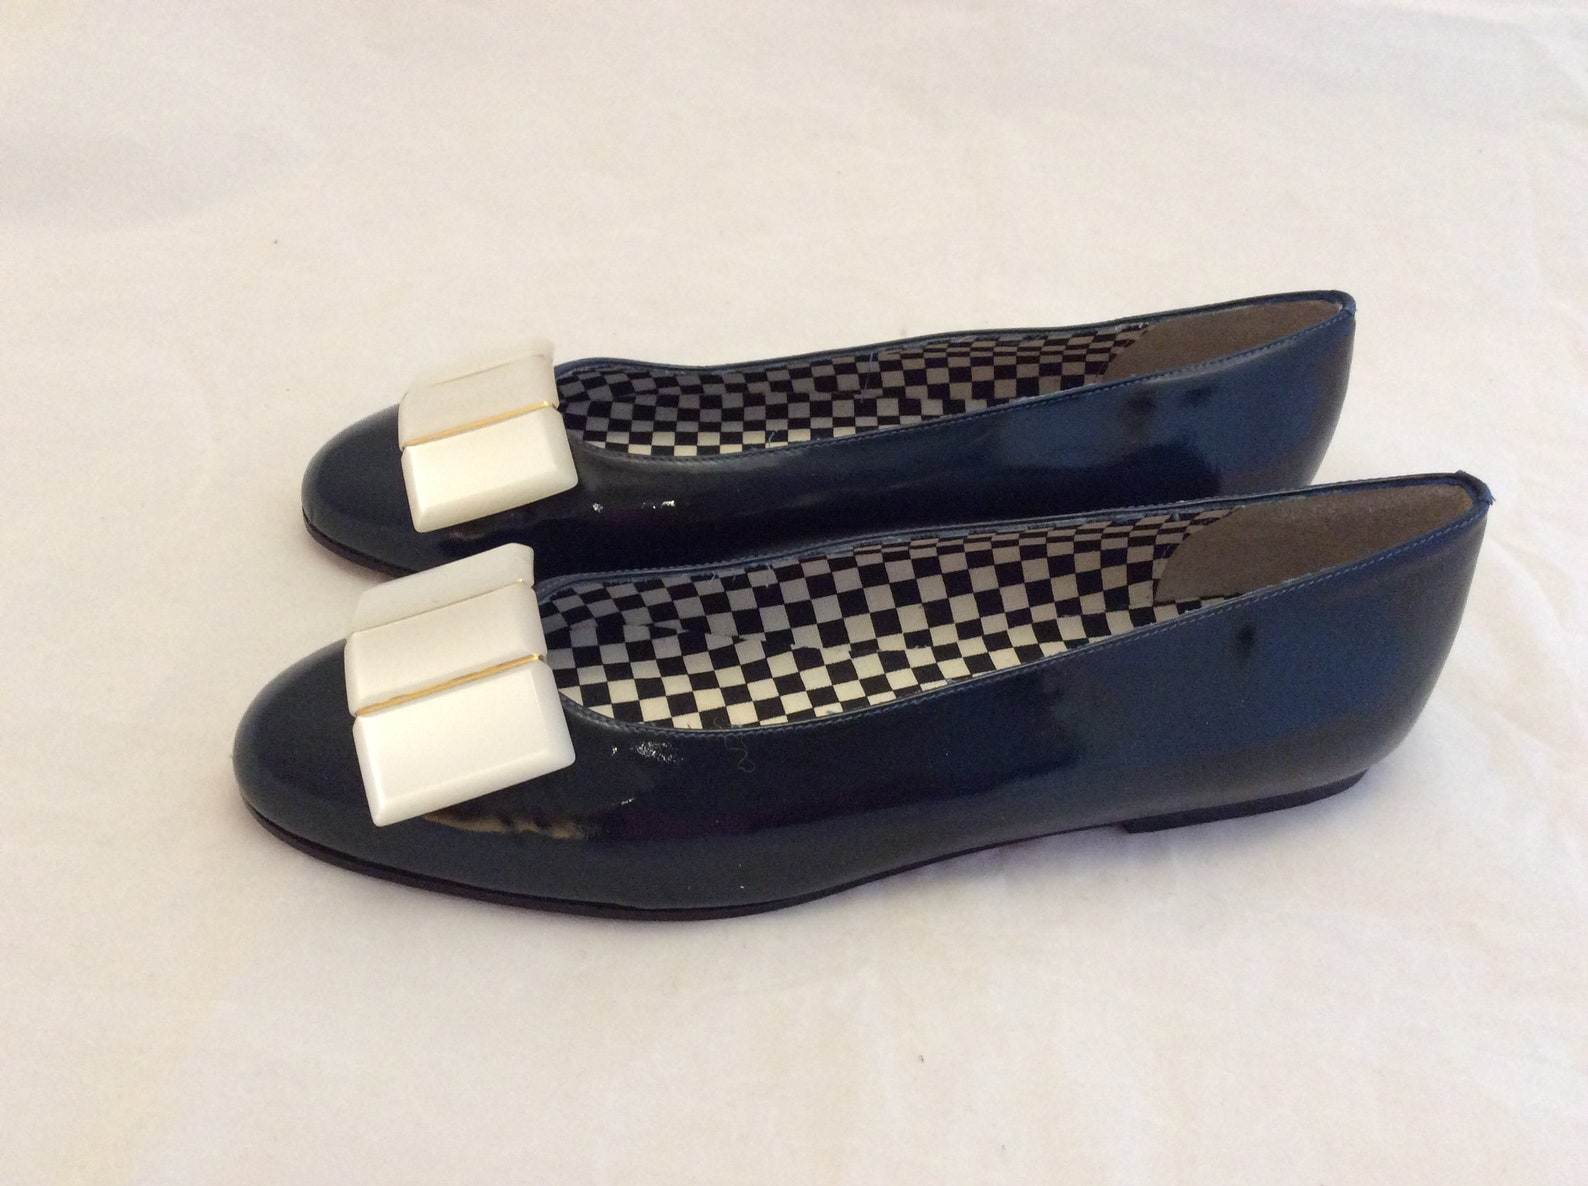 vintage saks fifth avenue flat shoes ballet flats new old stock size 7 mod retro